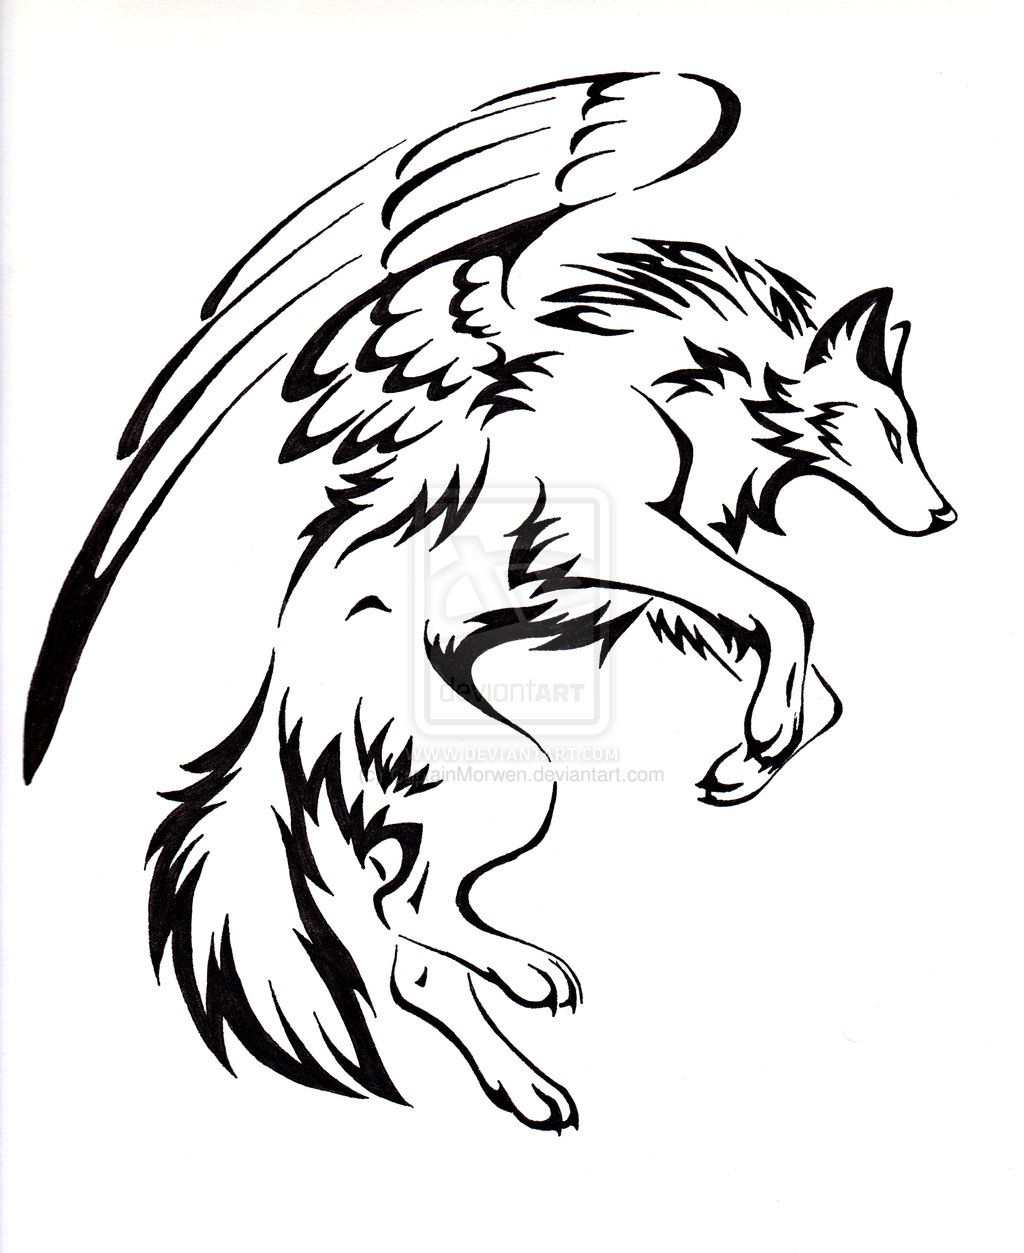 Courage Winged Wolf Tattoo by